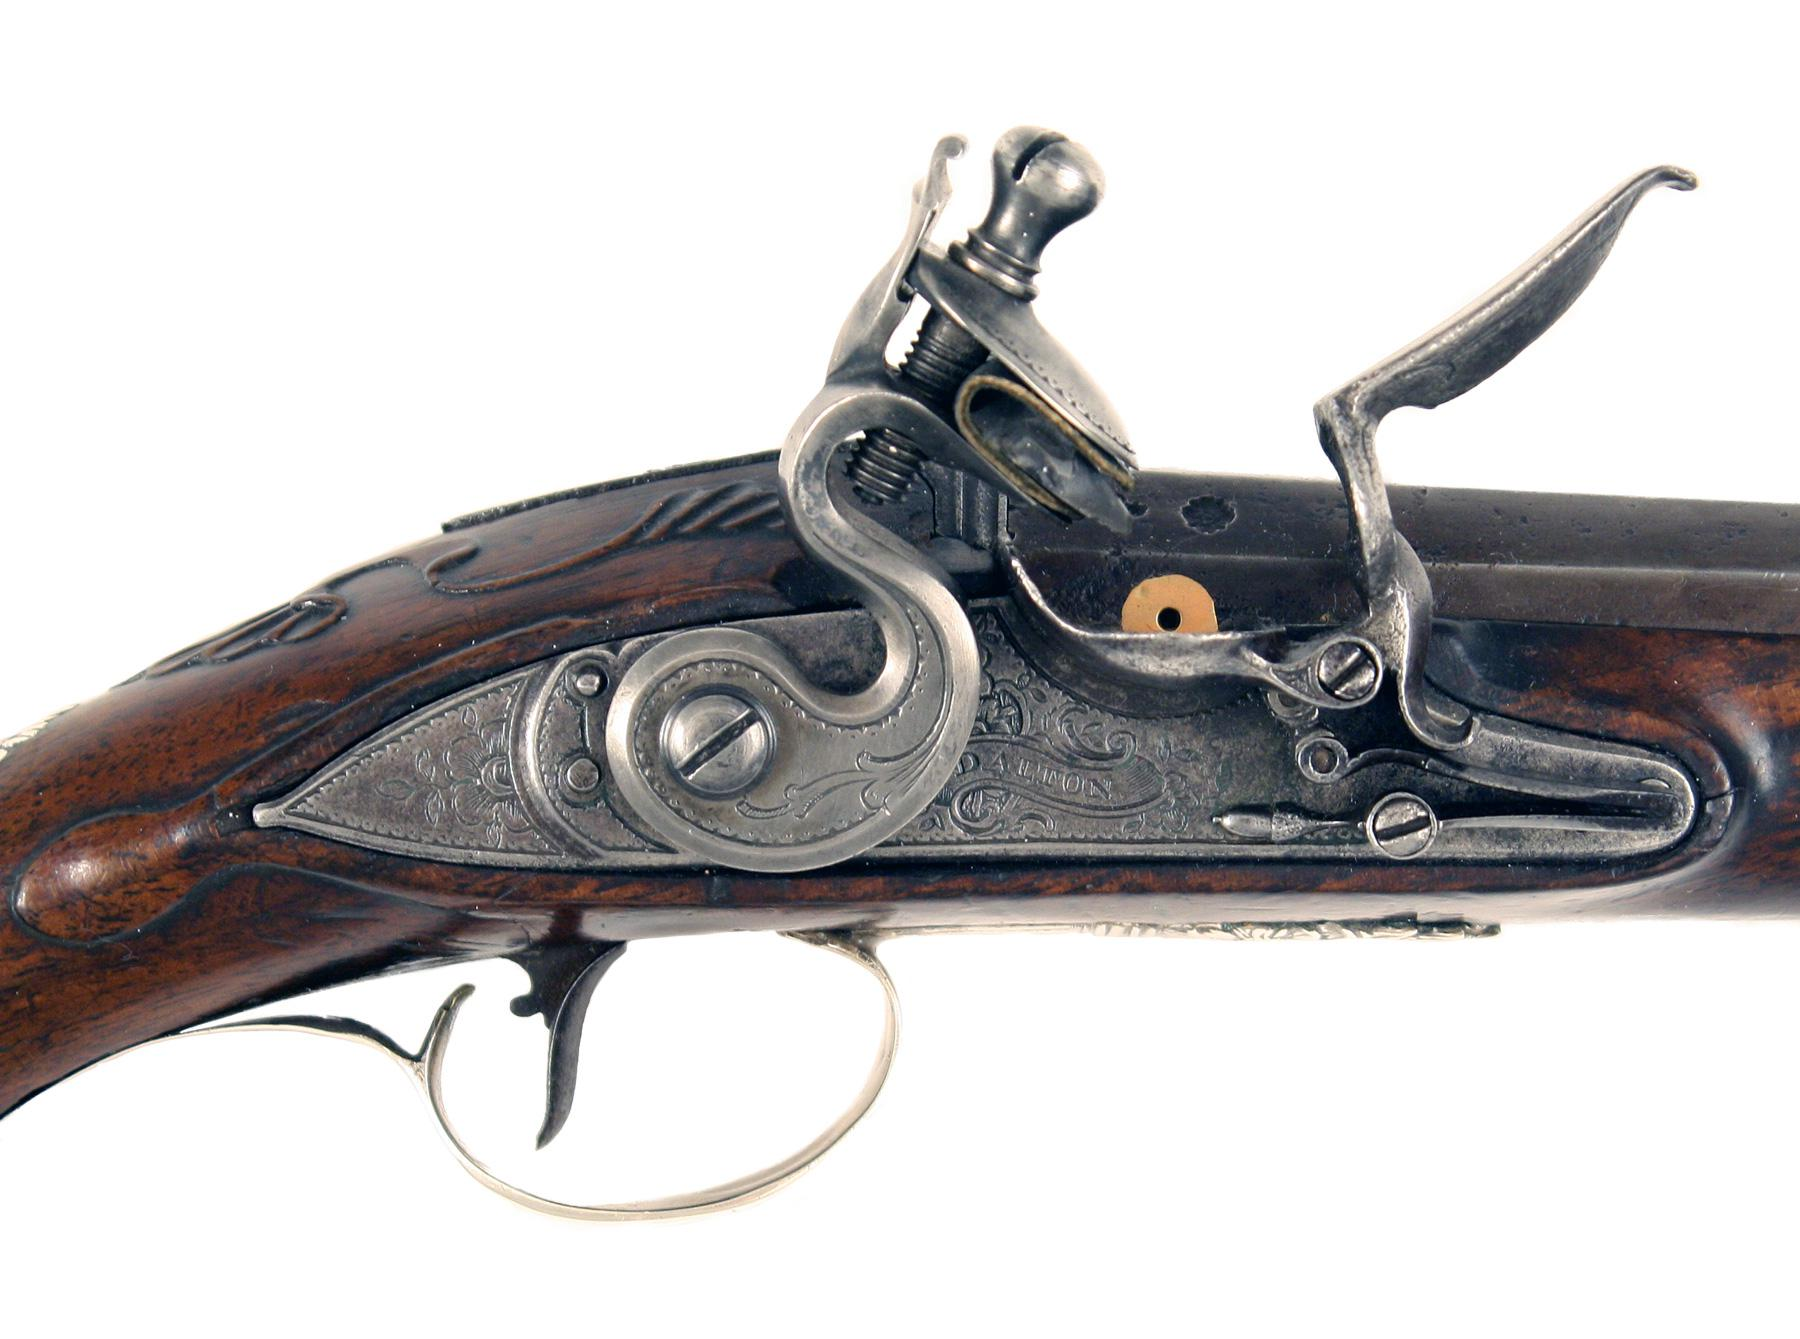 A Pair of Silver Mounted Pistols by Dalton of Dublin